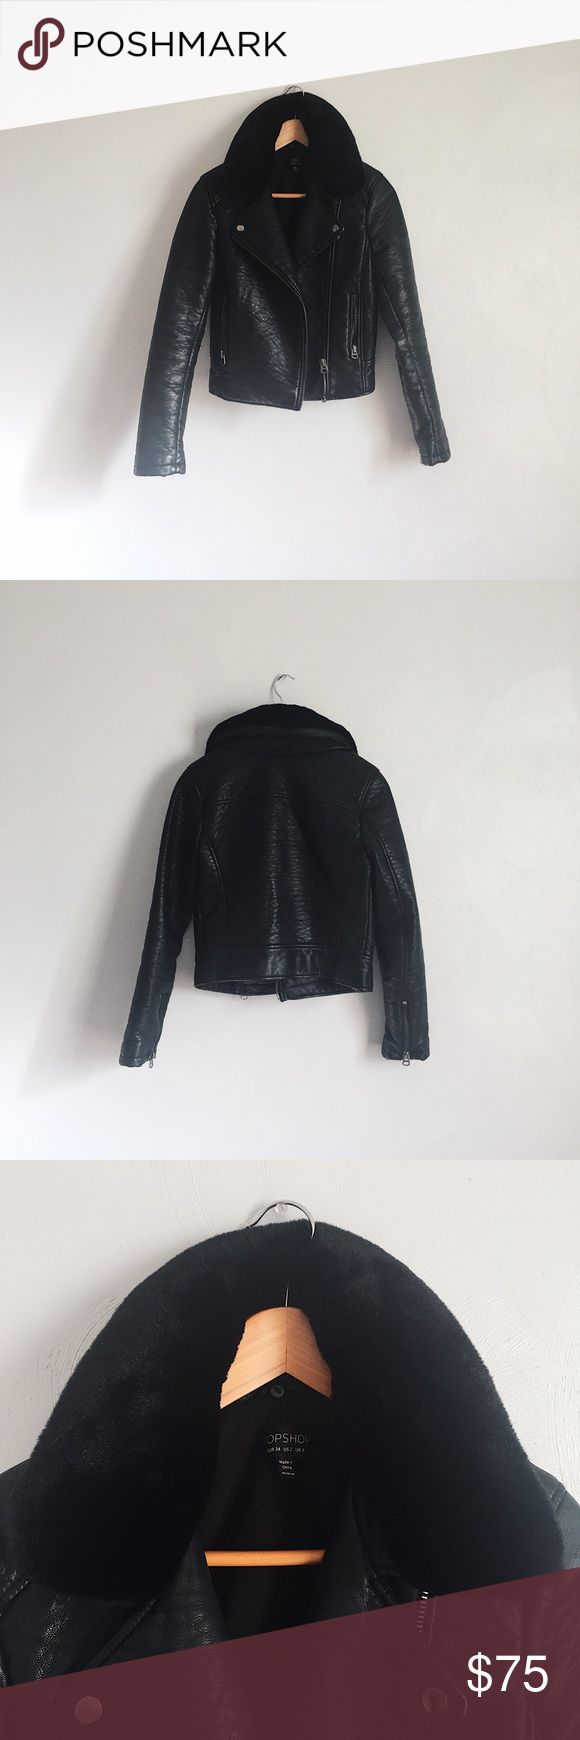 Topshop faux leather biker jacket with fur collar Only worn few times- great condition! Marked as US size 2, UK 6, EUR 34. Fits like an XS/S. Really nice thick material. Jacket and fur collar are both faux. The fur collar is removable so it's a great transition piece between warmer and cooler seasons. The last photo shows the jacket without the collar. Topshop Jackets & Coats